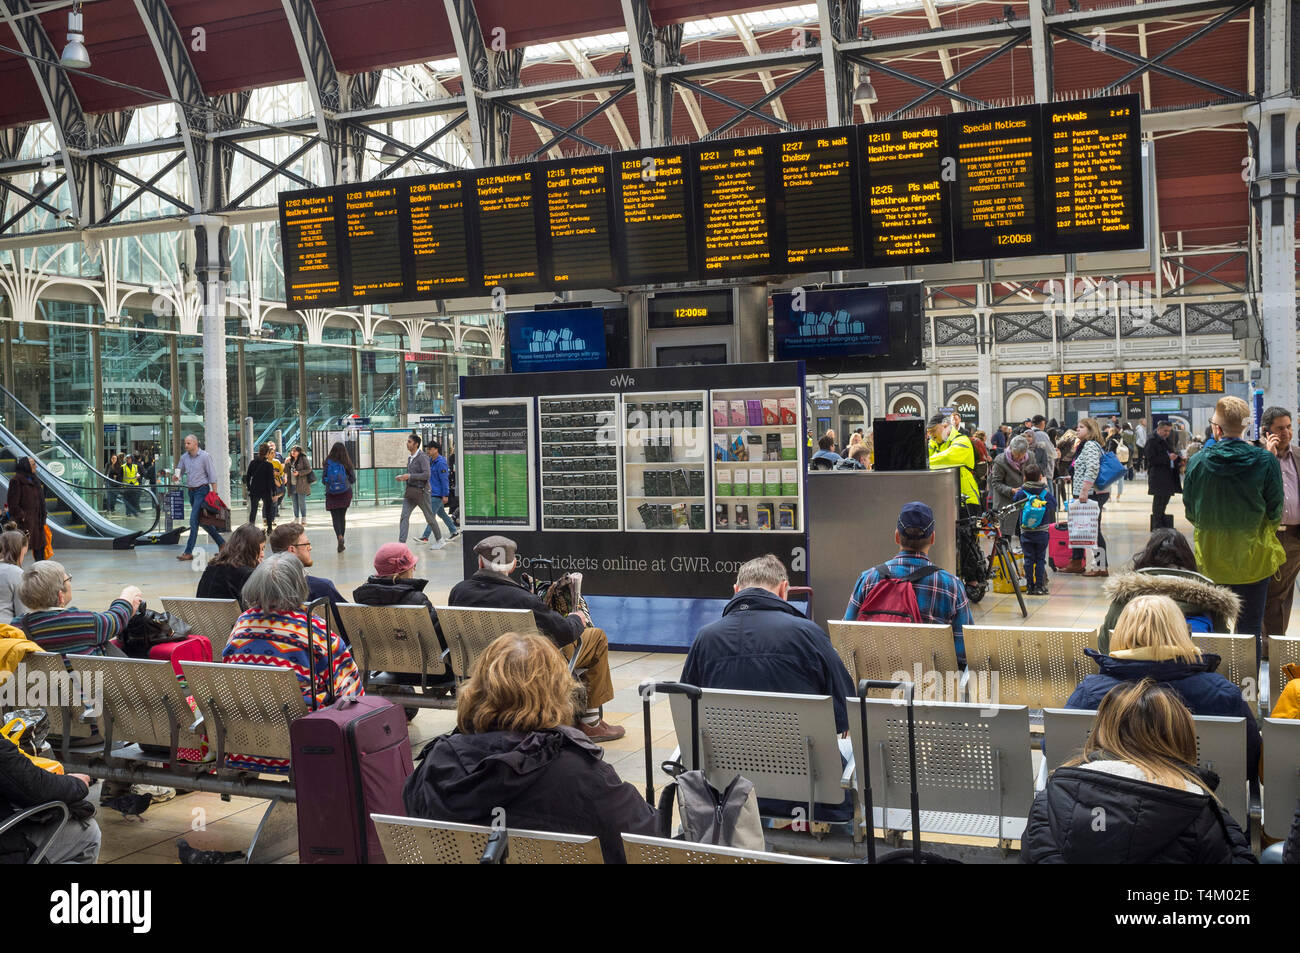 Travellers waiting by the illuminated display board at Paddington Station, london Stock Photo